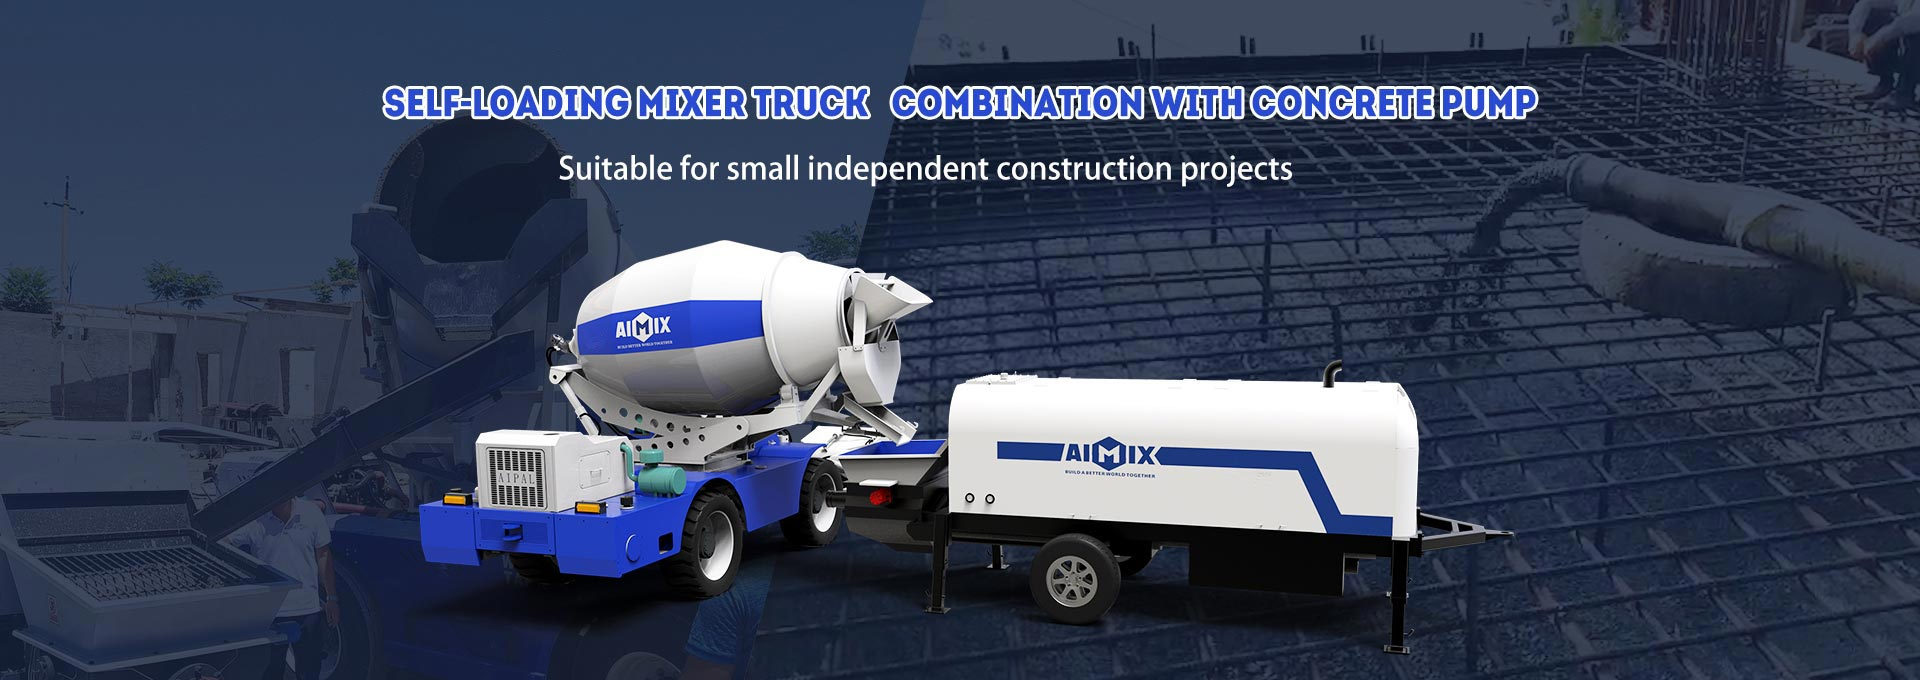 AS Series Self-loading Mixer Truck Combination with Trailer Concrete Pump